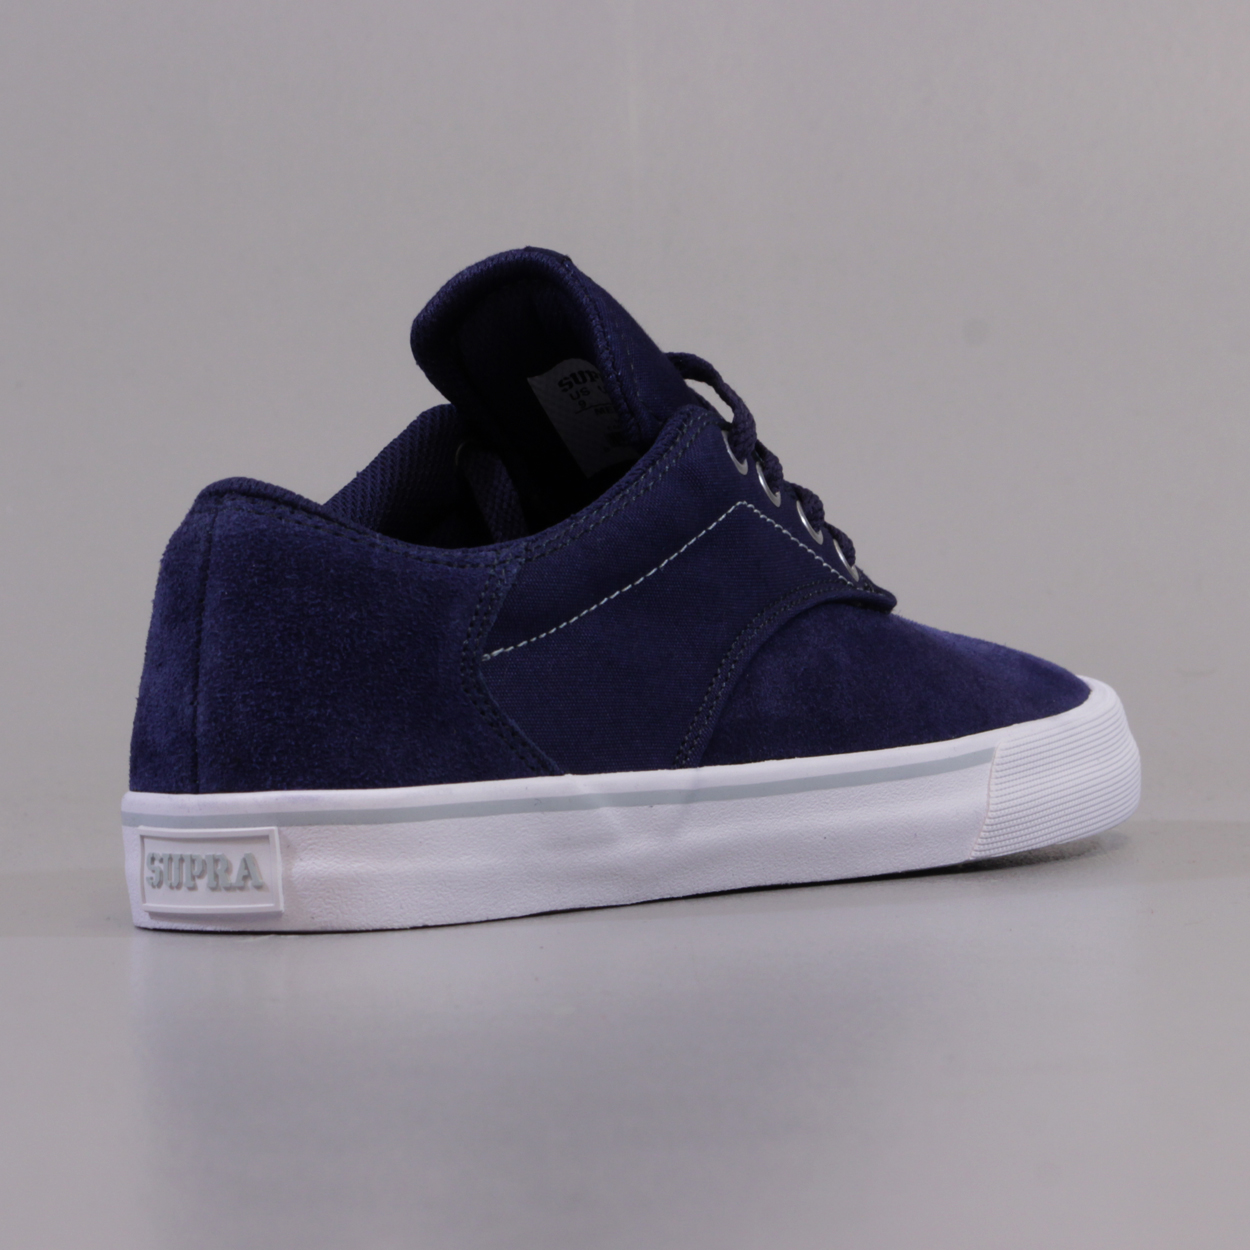 57f901cb04c6 The Supra Pistol Shoes in Peacoat Blue and White. Now I m not sure what  peacoat blue is because dark or navy blue will easily describe these shoes.